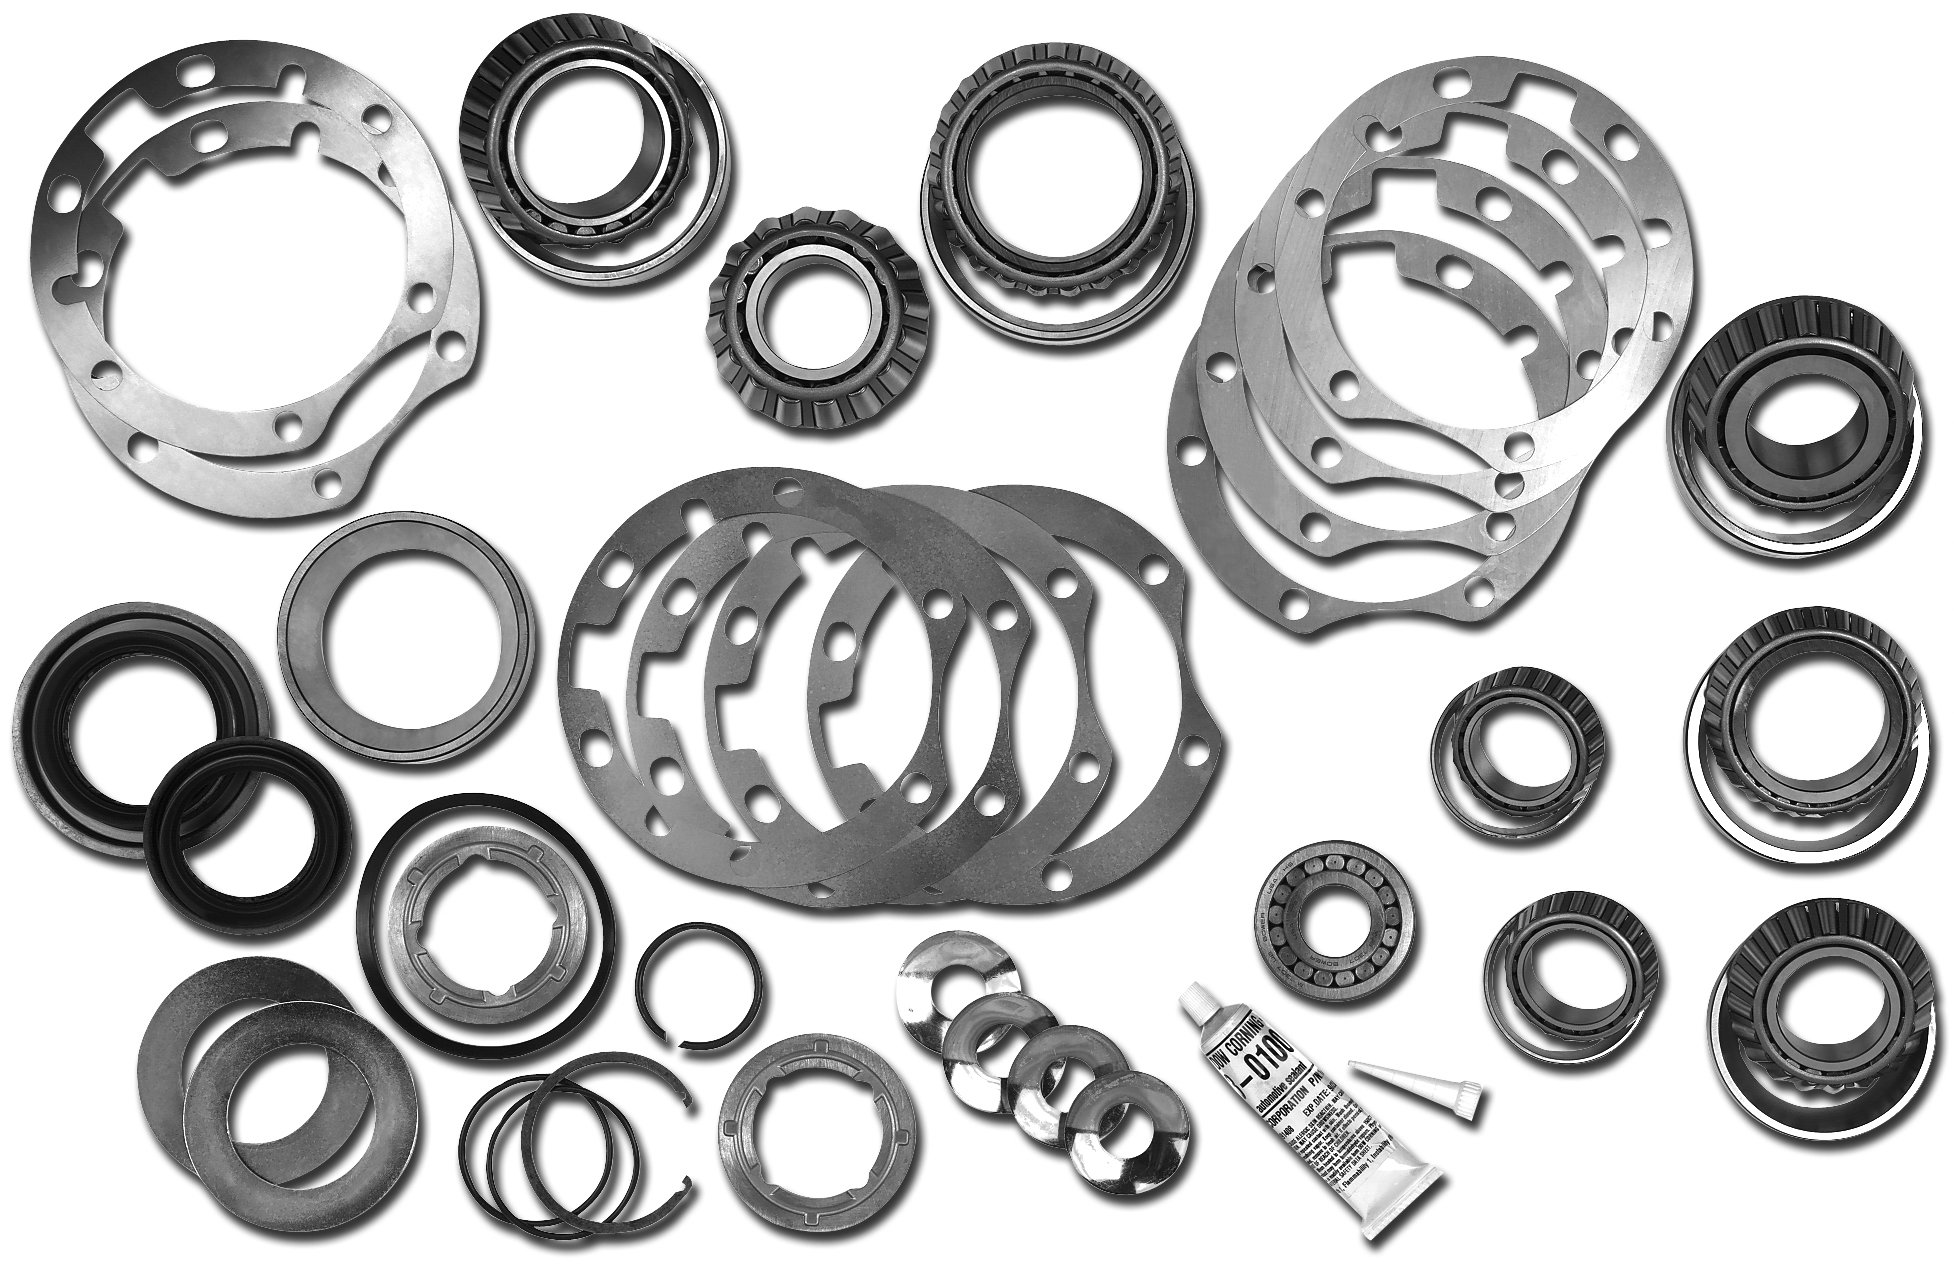 Dana Spicer Master Axle Overhaul Kit For Jeep